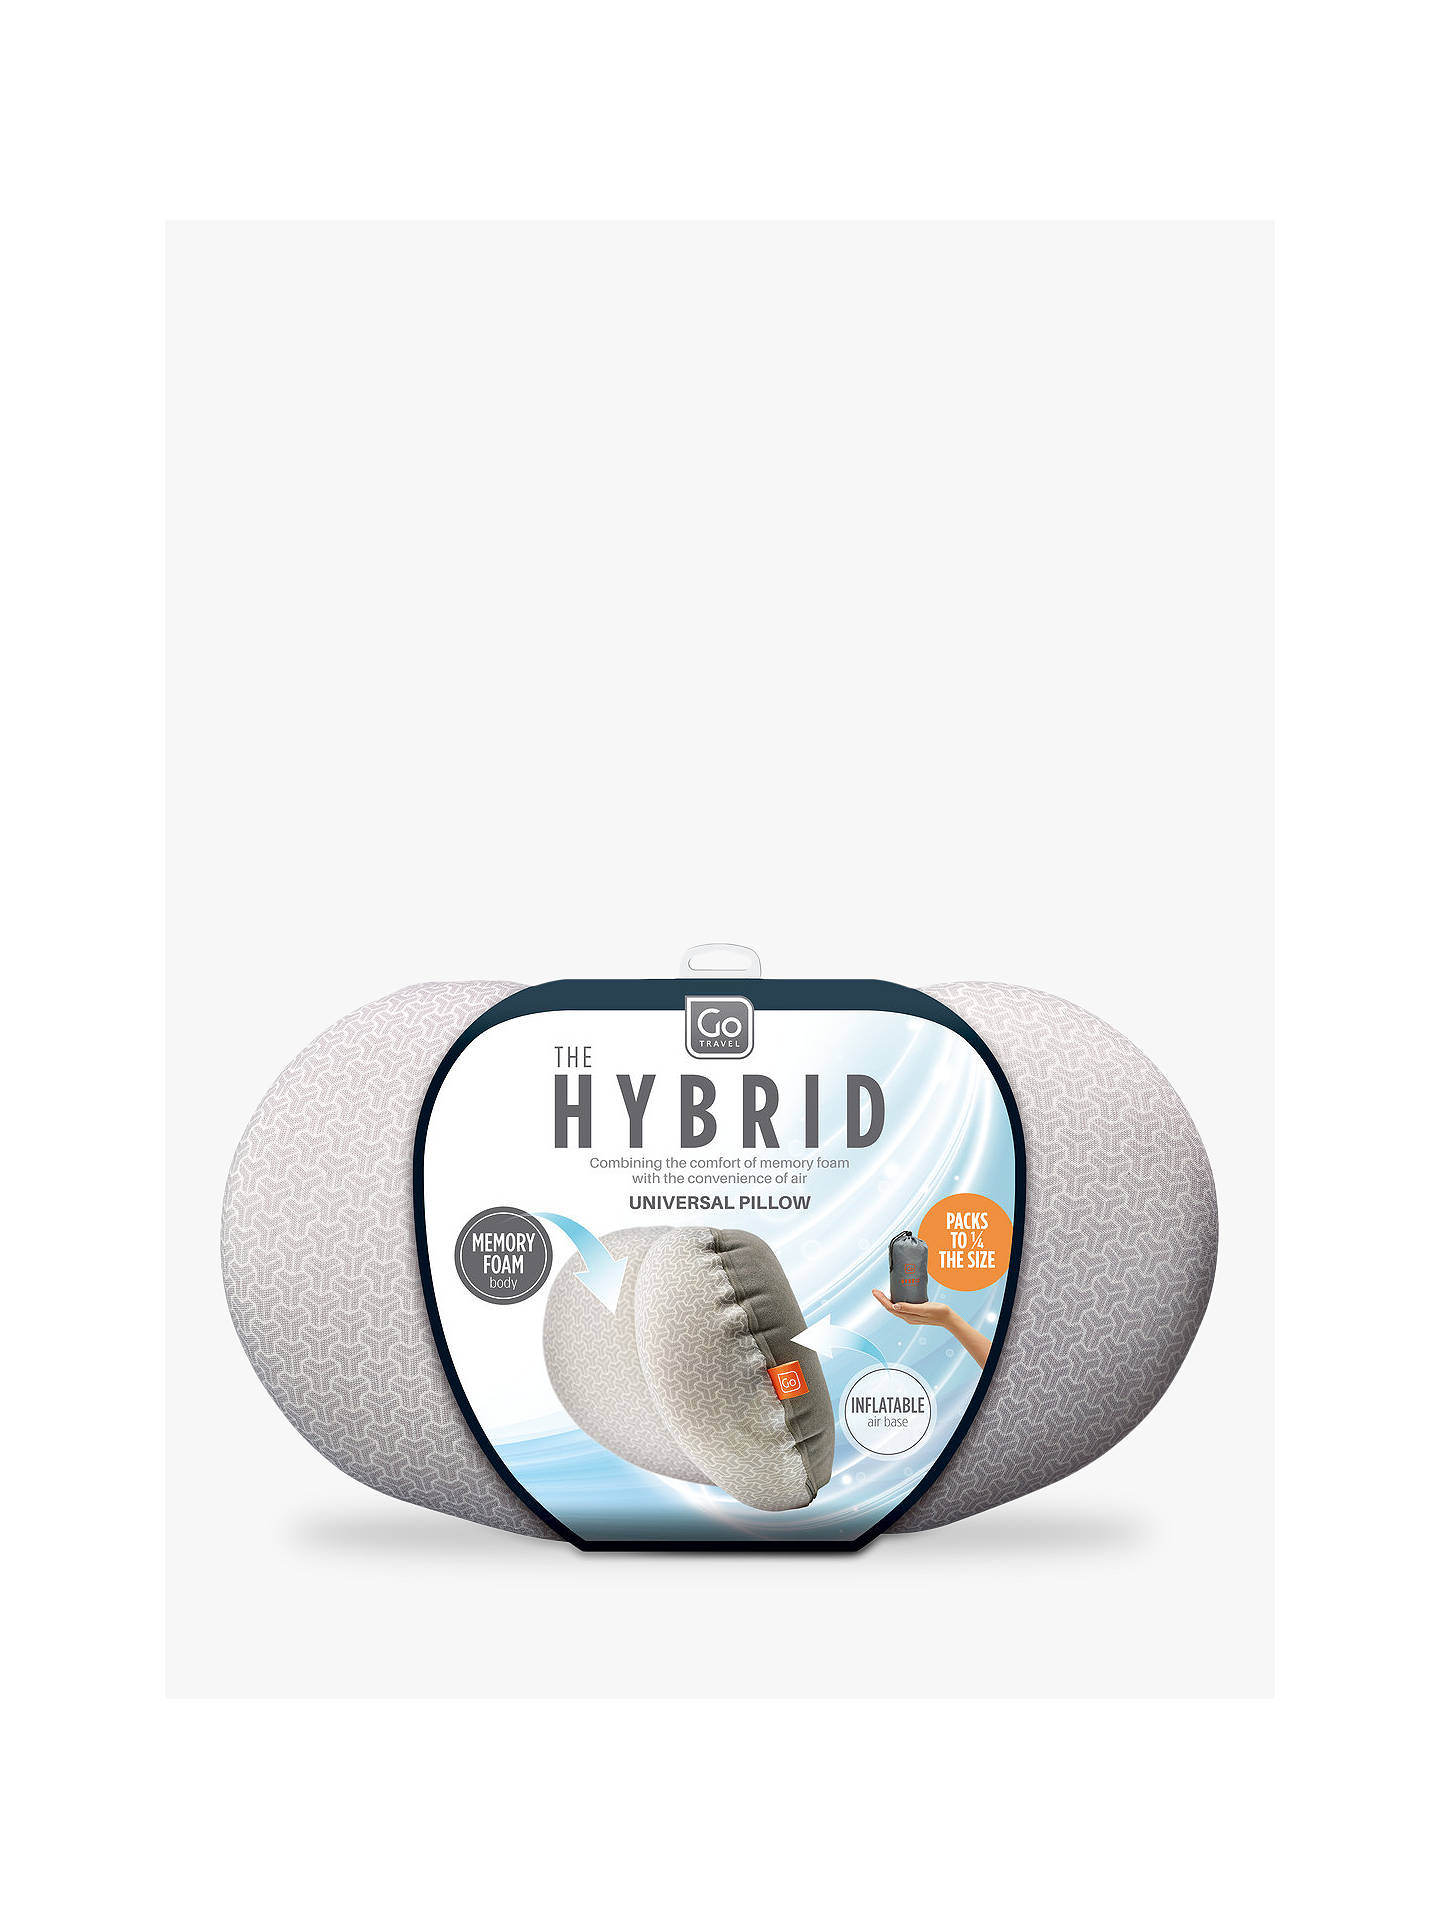 Go Travel Hybrid Universal Pillow at